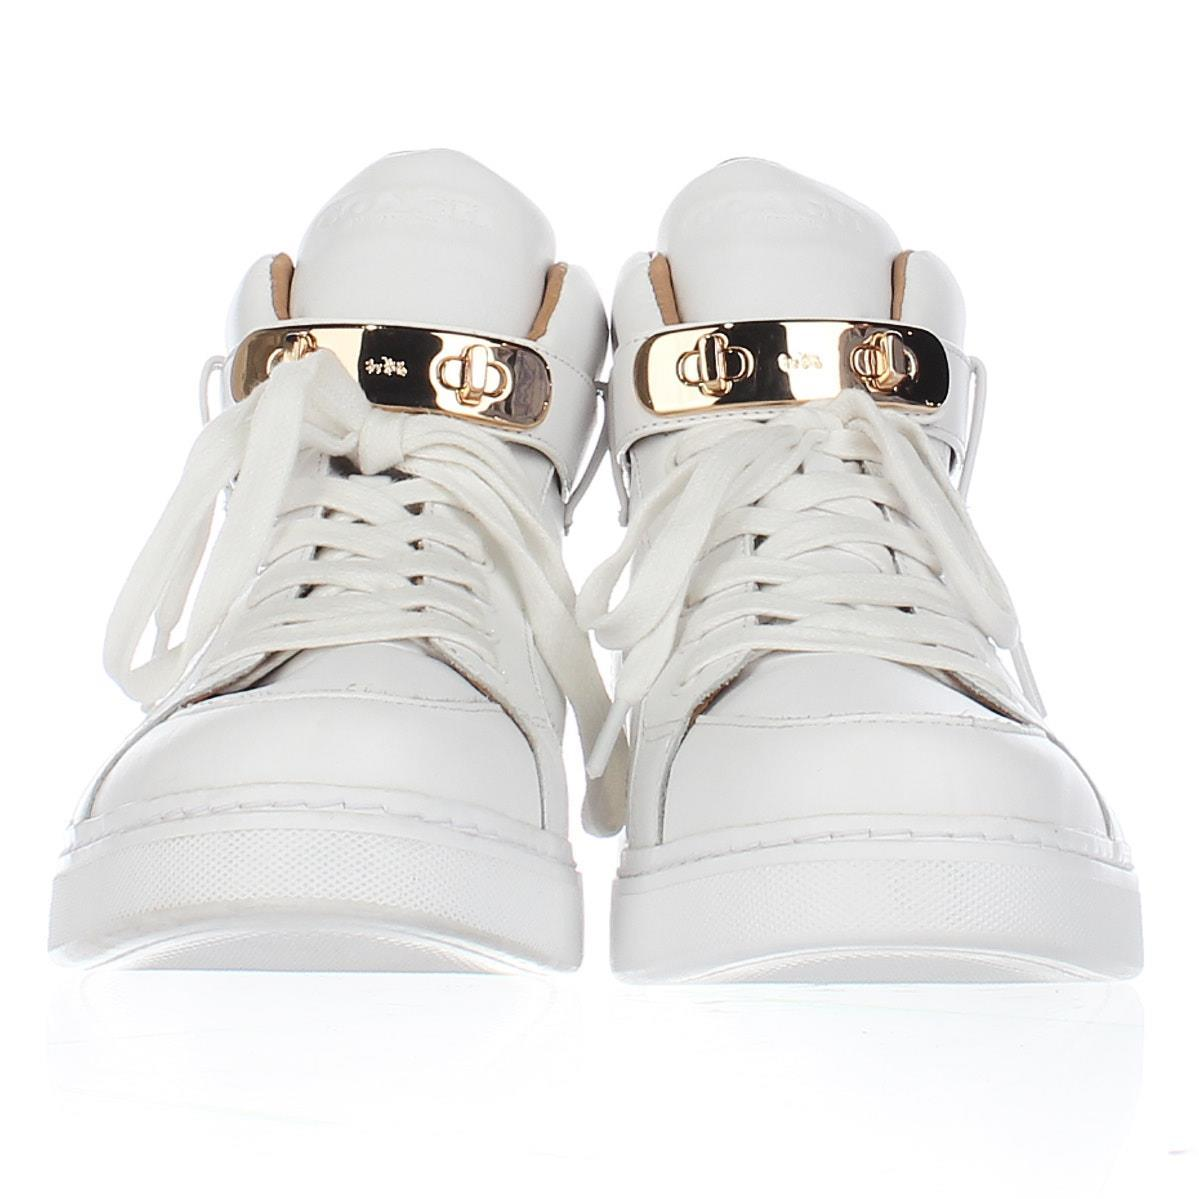 Coach Richmond Fleece Lined High Top Fashion Sneakers F61, White, 11 US Display